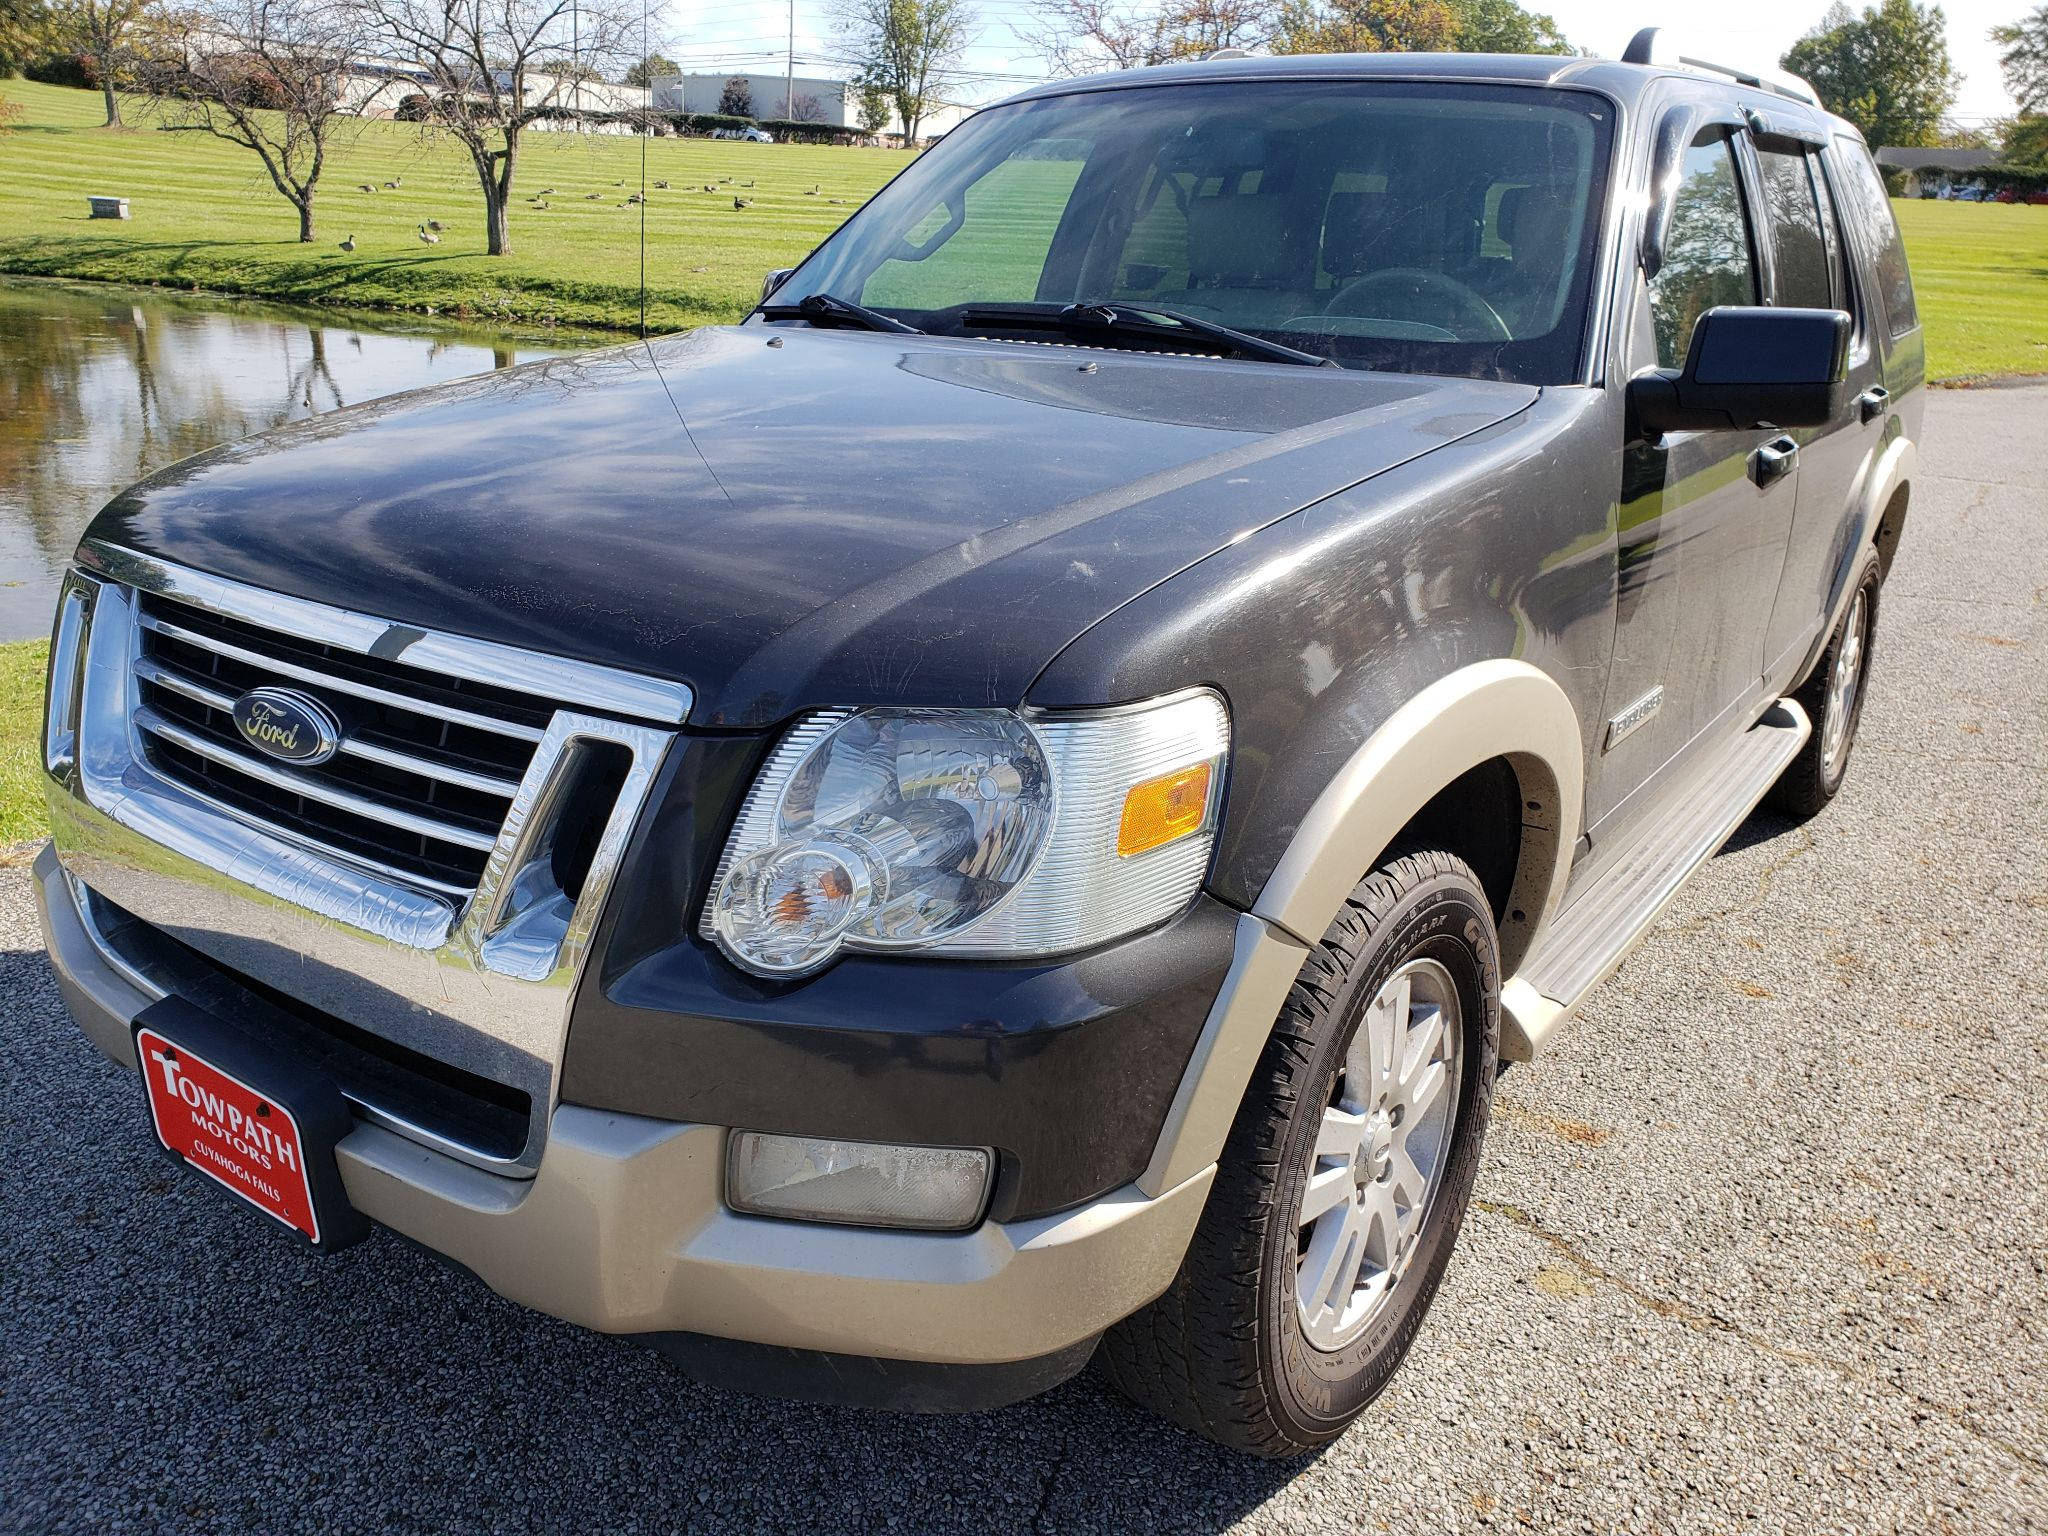 2007 Ford Explorer for sale at Towpath Motors | Used Car Dealer in Peninsula Ohio